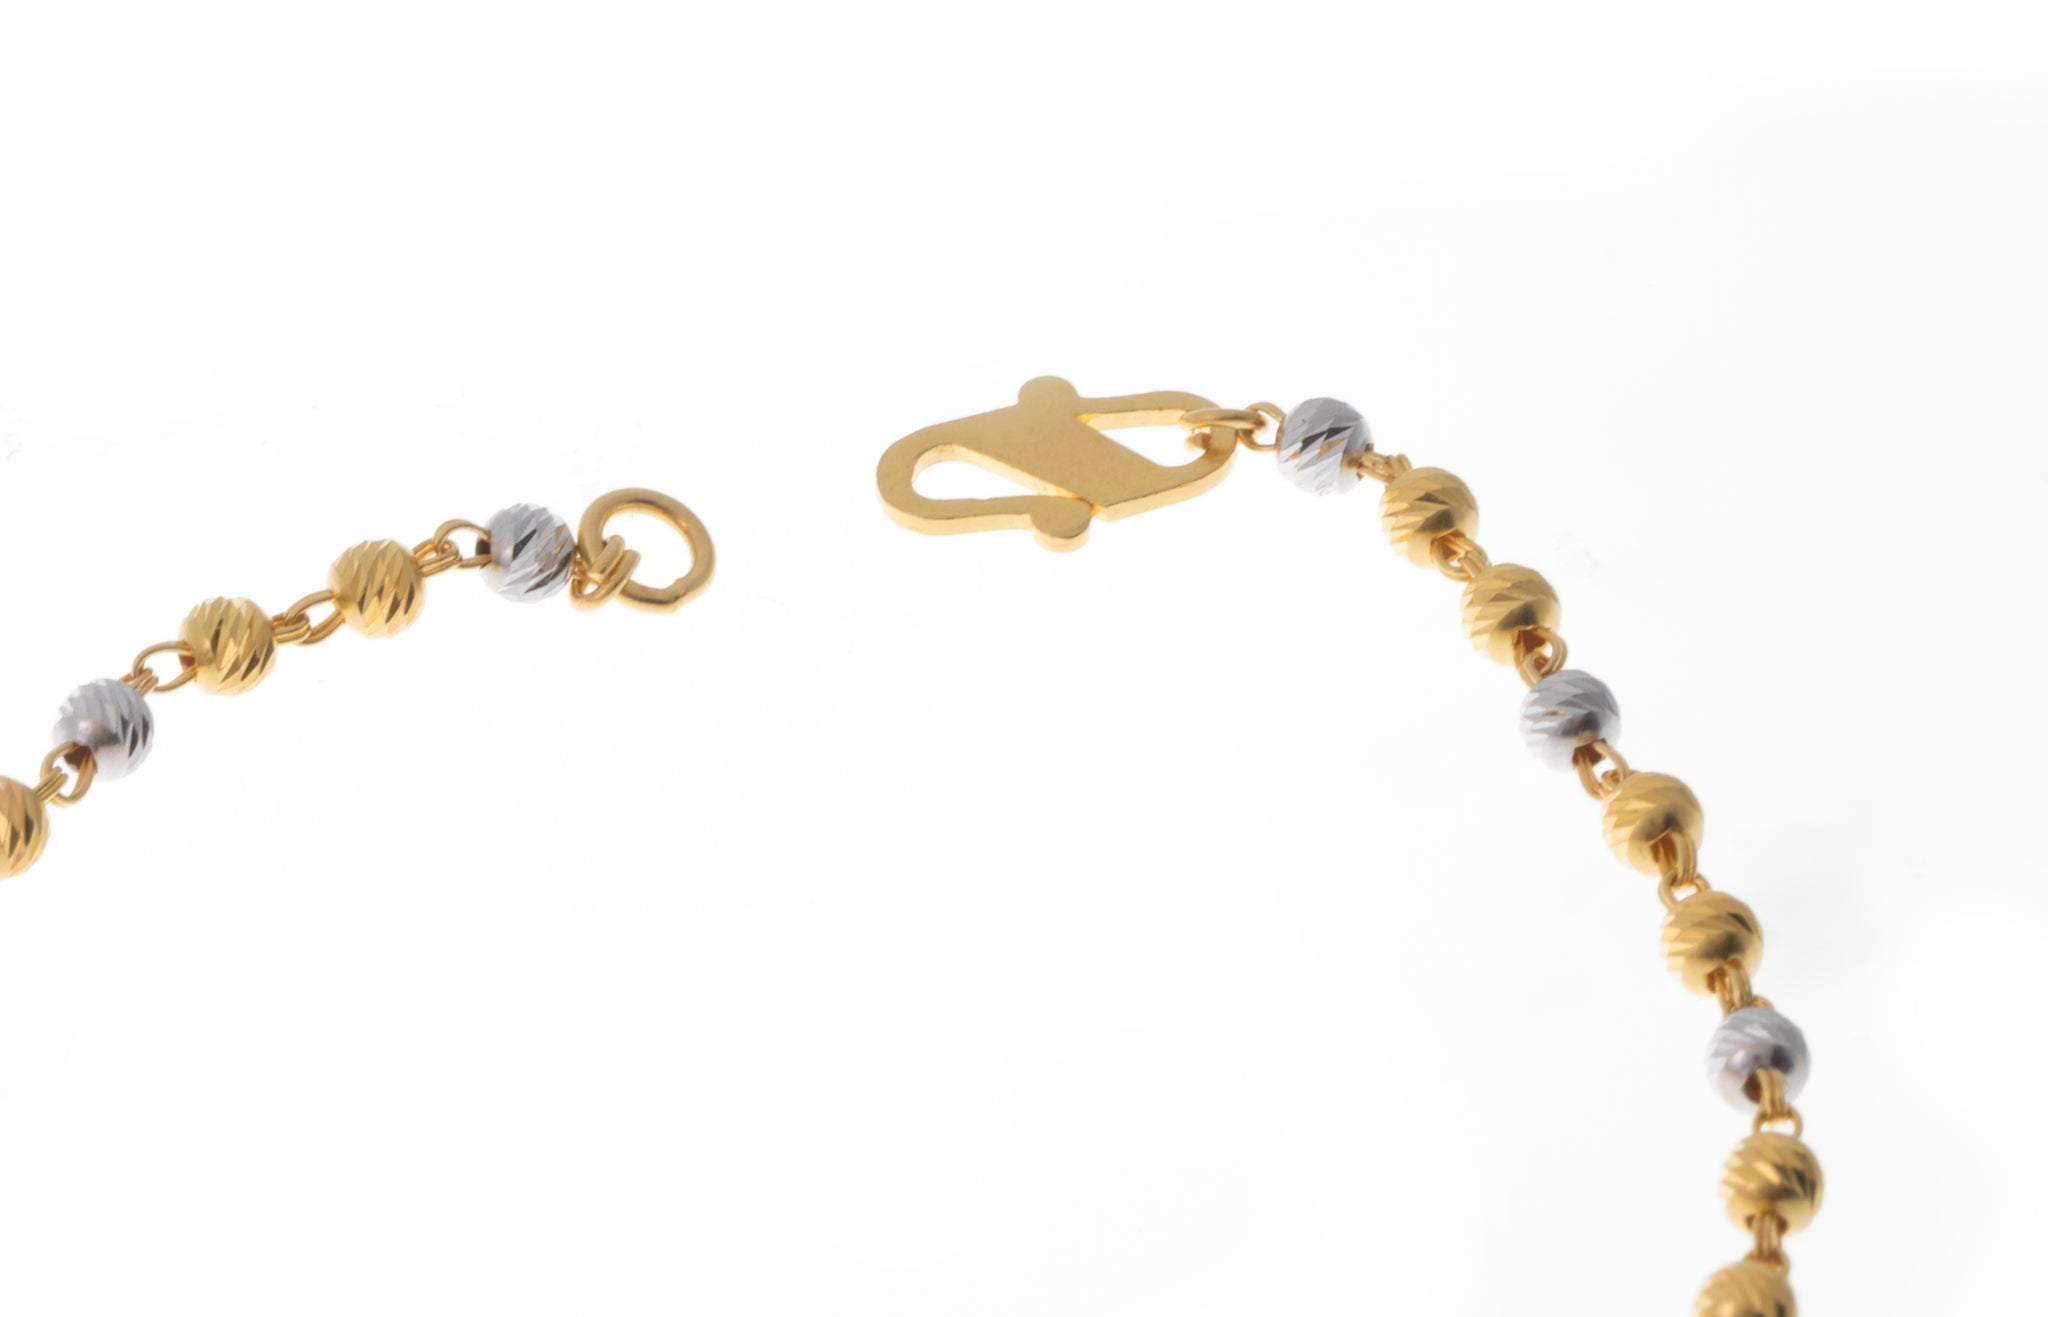 22ct Gold Bracelet with Diamond Cut and Rhodium Design (4.5g) LBR-7394